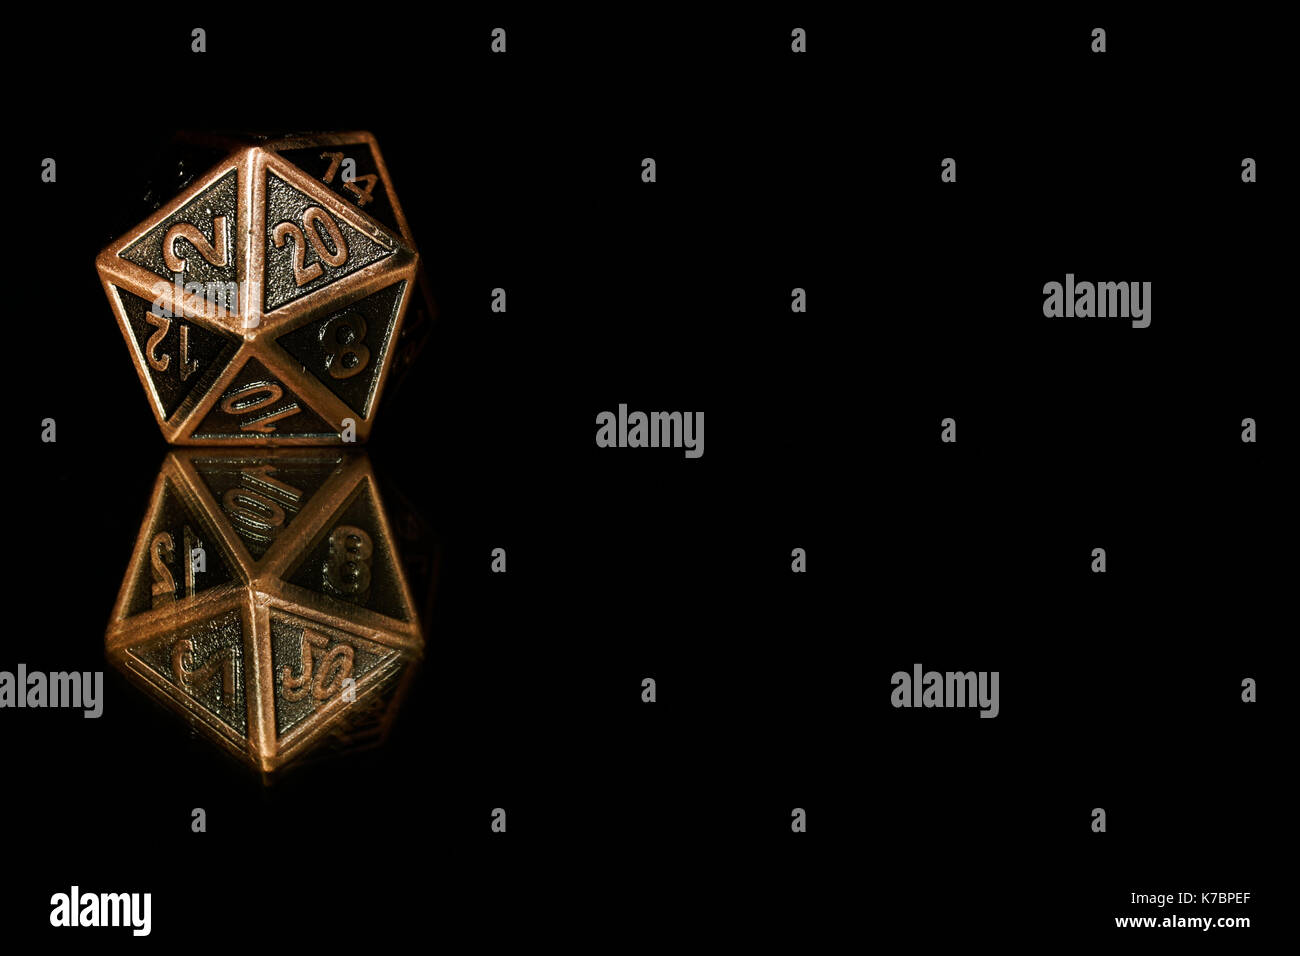 A twenty sided  polyhedral die on a mirrored surface. These type of dice are used for role playing games such as Dungeons & Dragons. - Stock Image